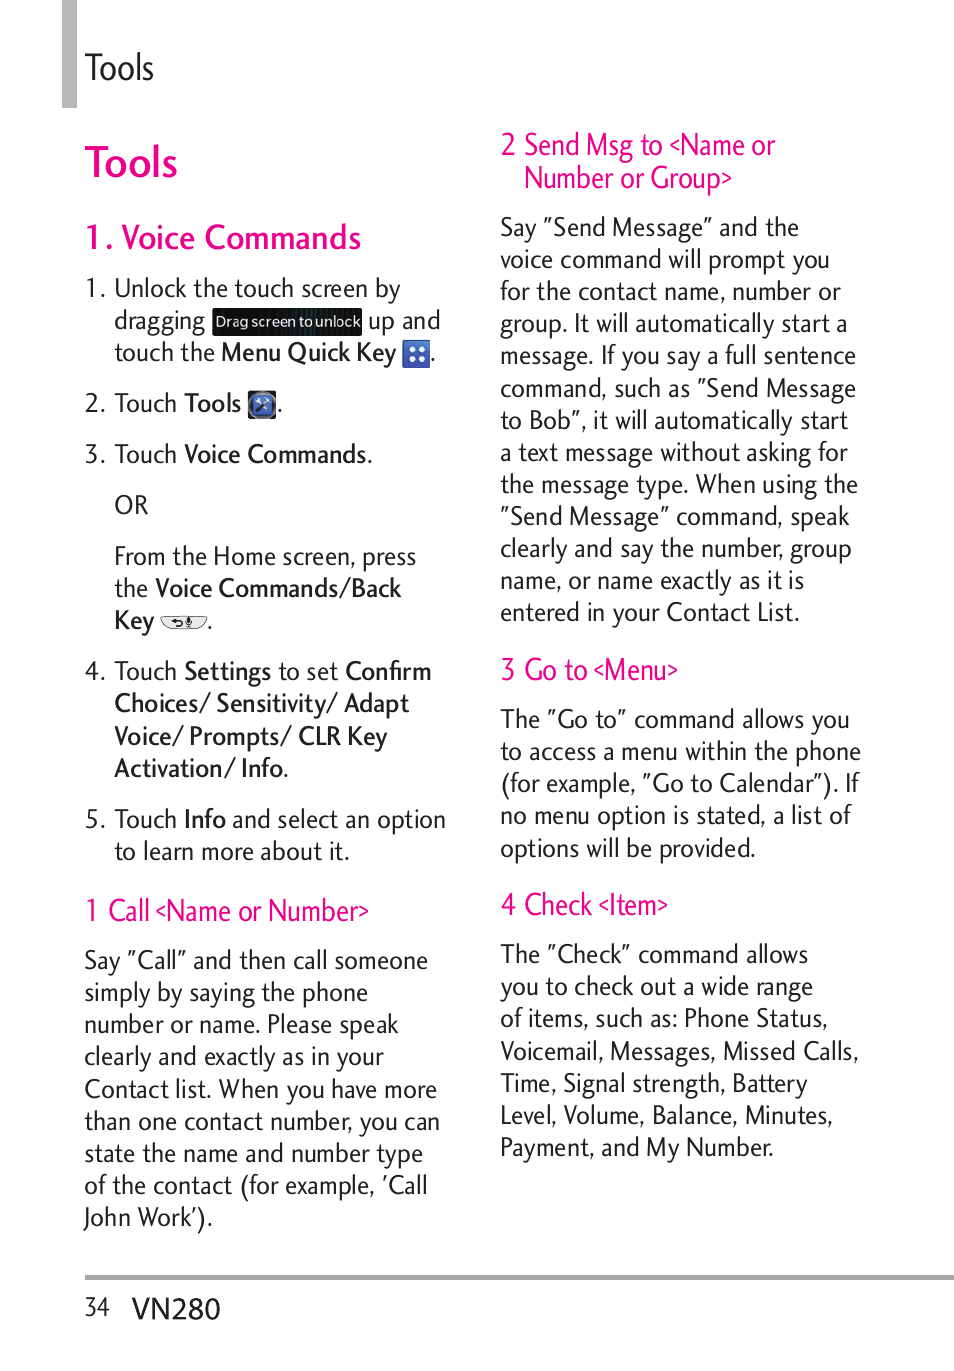 Tools, Voice commands   LG VN280 User Manual   Page 36 / 126